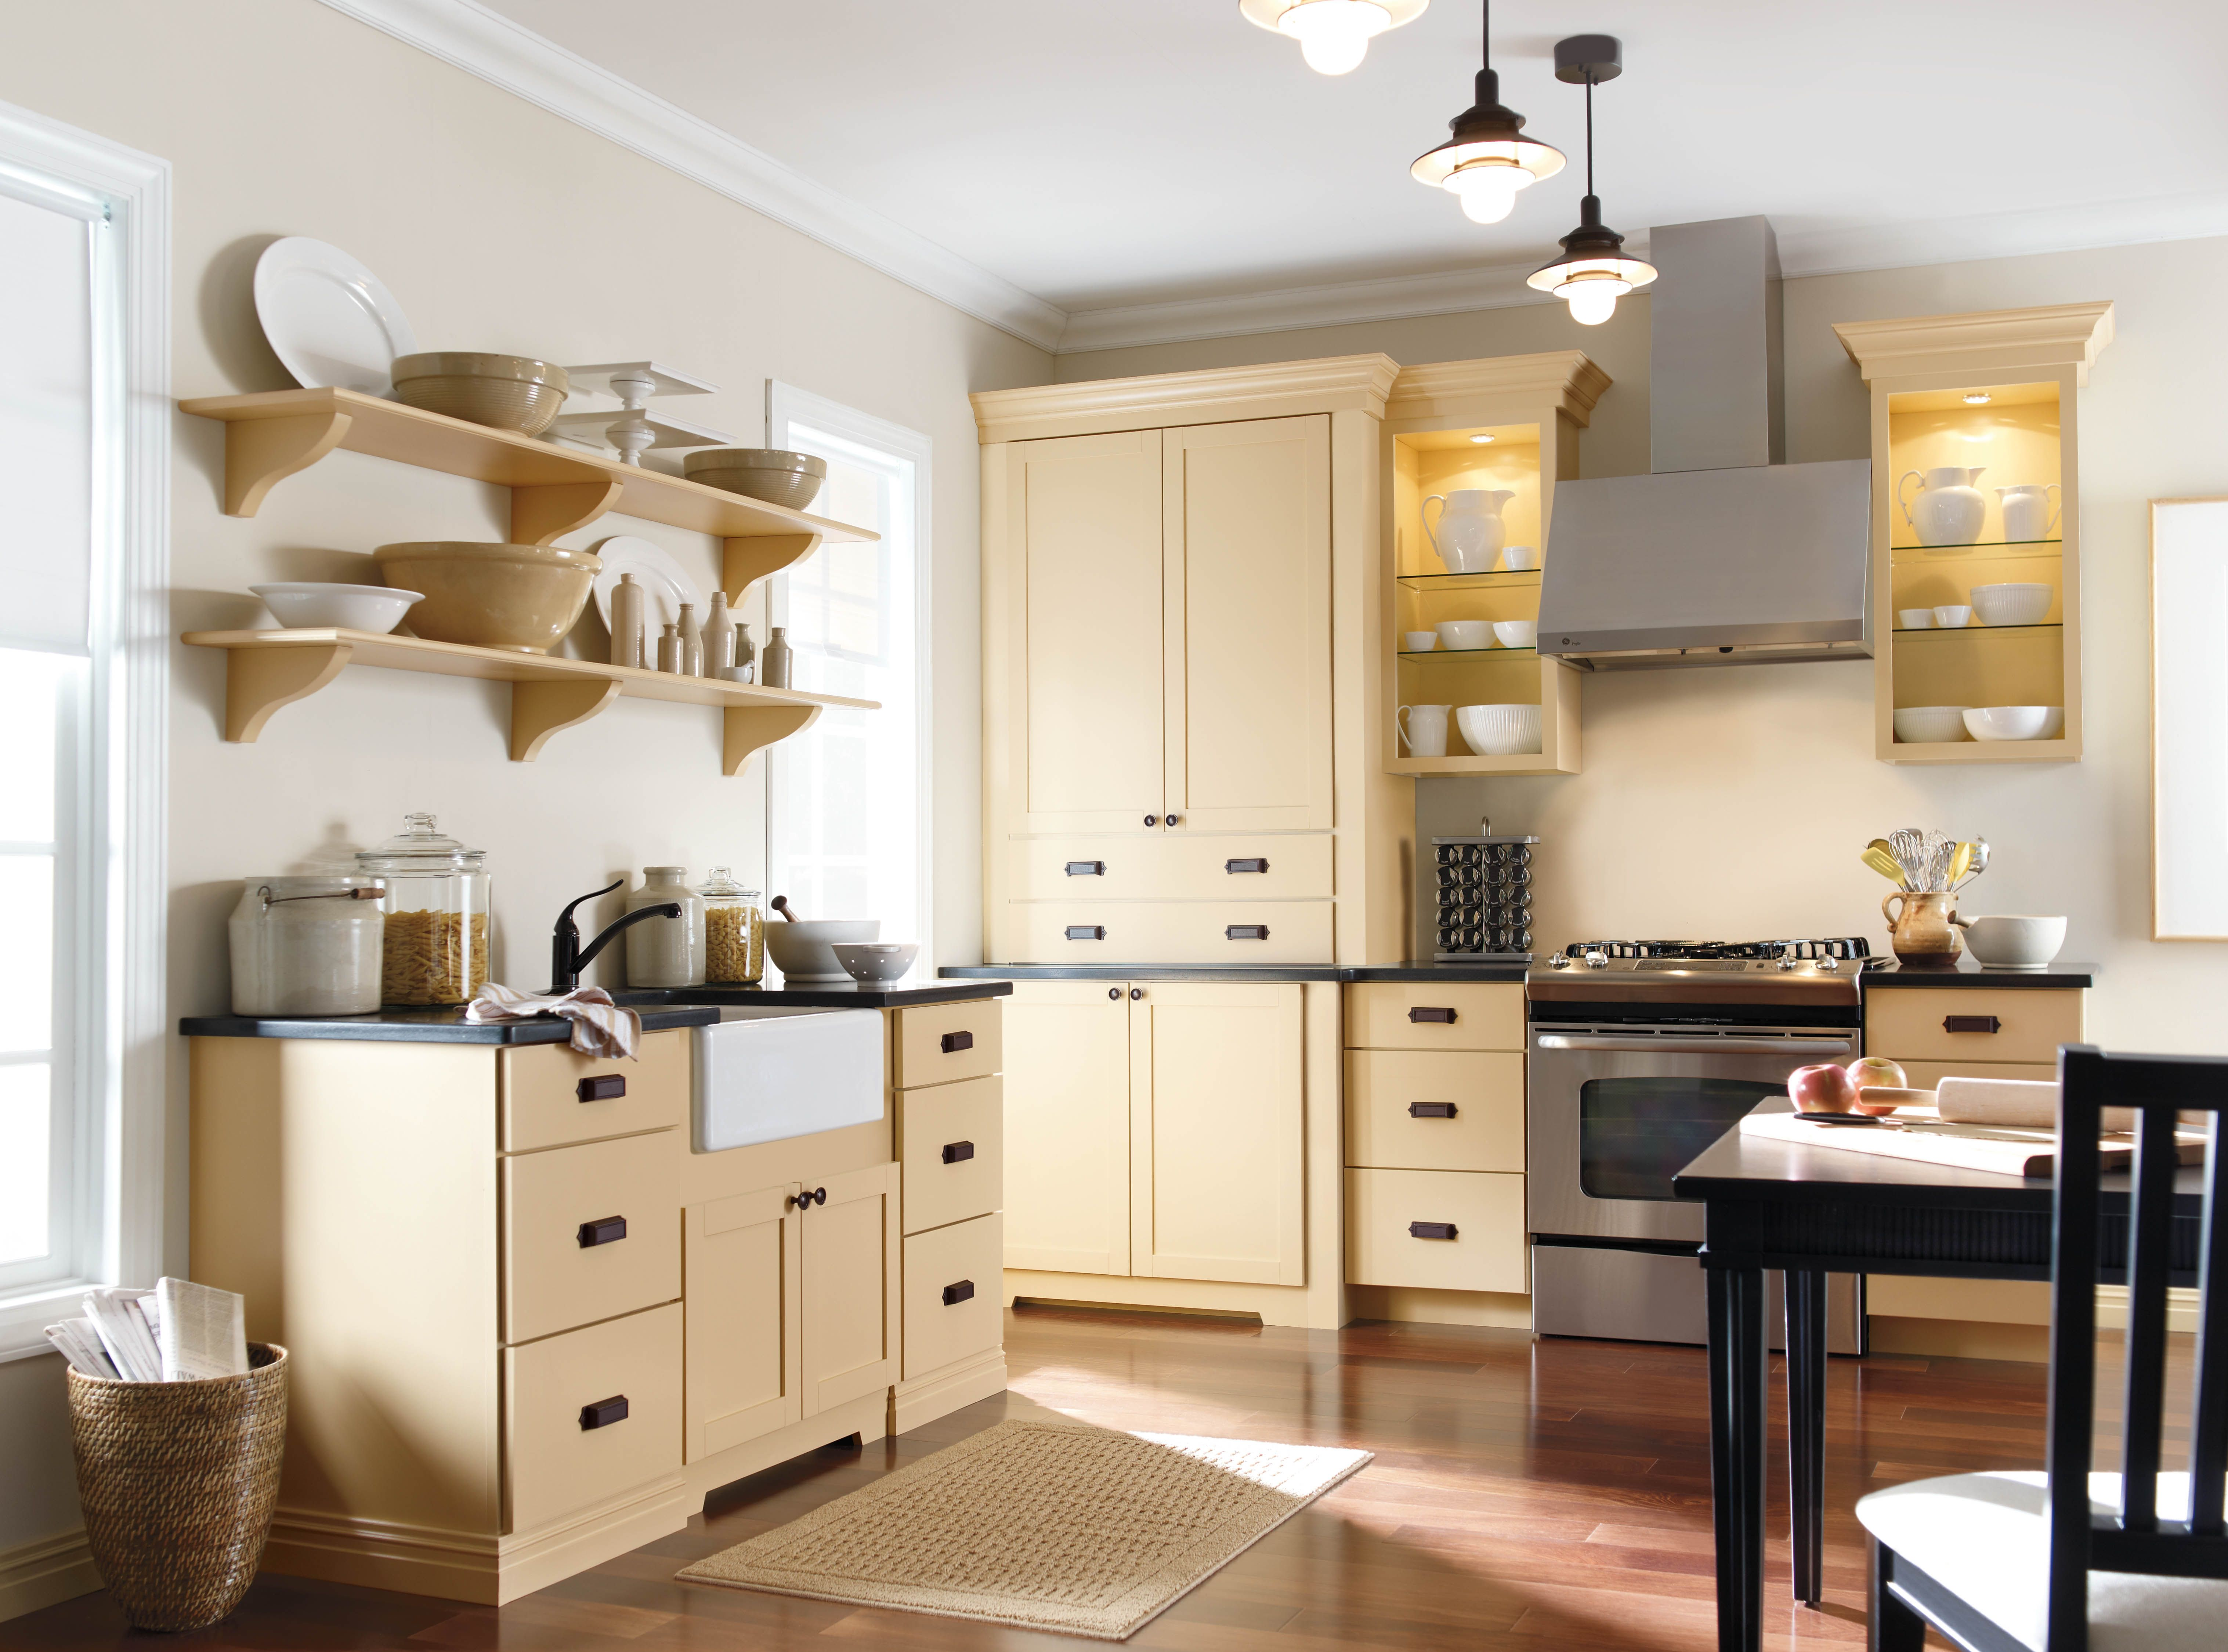 of cabinets arrange martha kitchen organize stewart with to size good how living marth way best together full